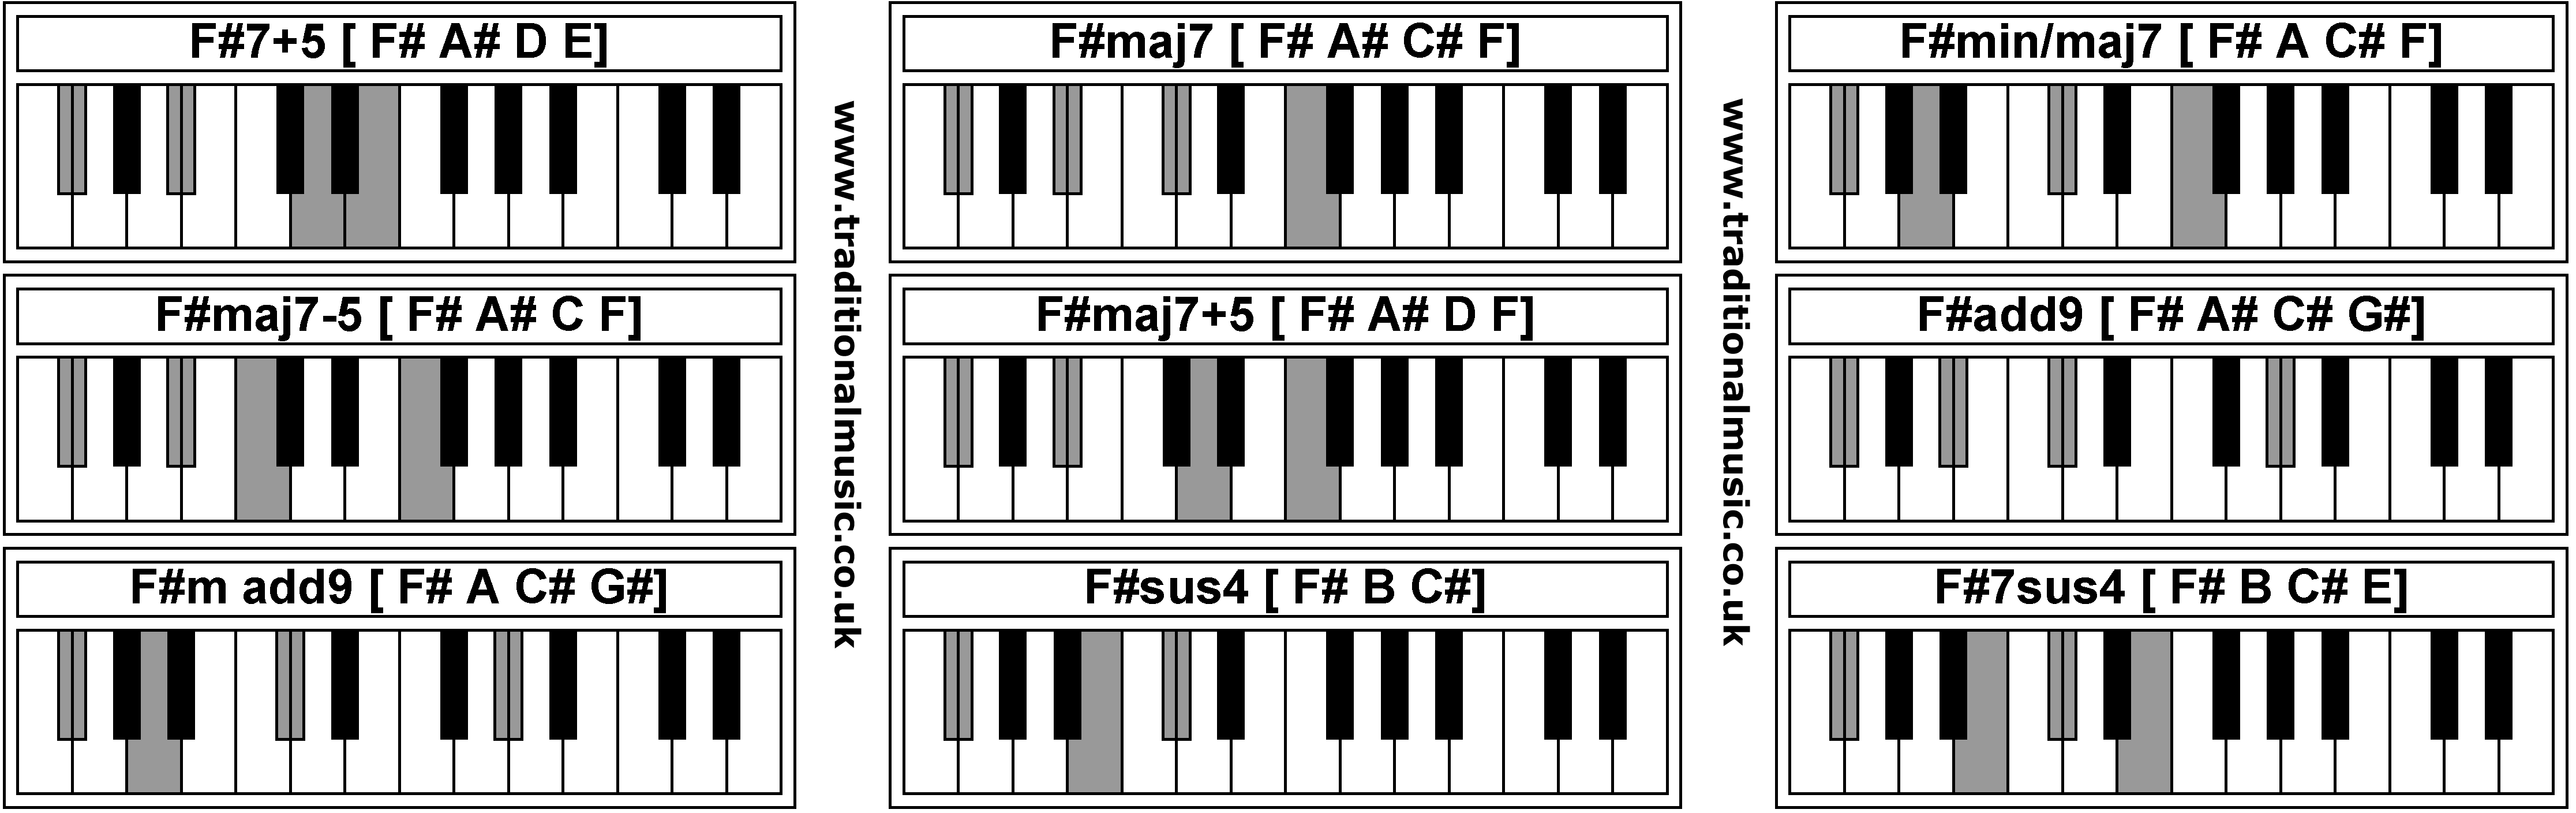 Chords f75 fmaj7 fminmaj7 fmaj7 5 fmaj7 chords f75 fmaj7 fminmaj7 fmaj7 5 fmaj75 fadd9 fm add9 fsus4 f7sus4 hexwebz Image collections